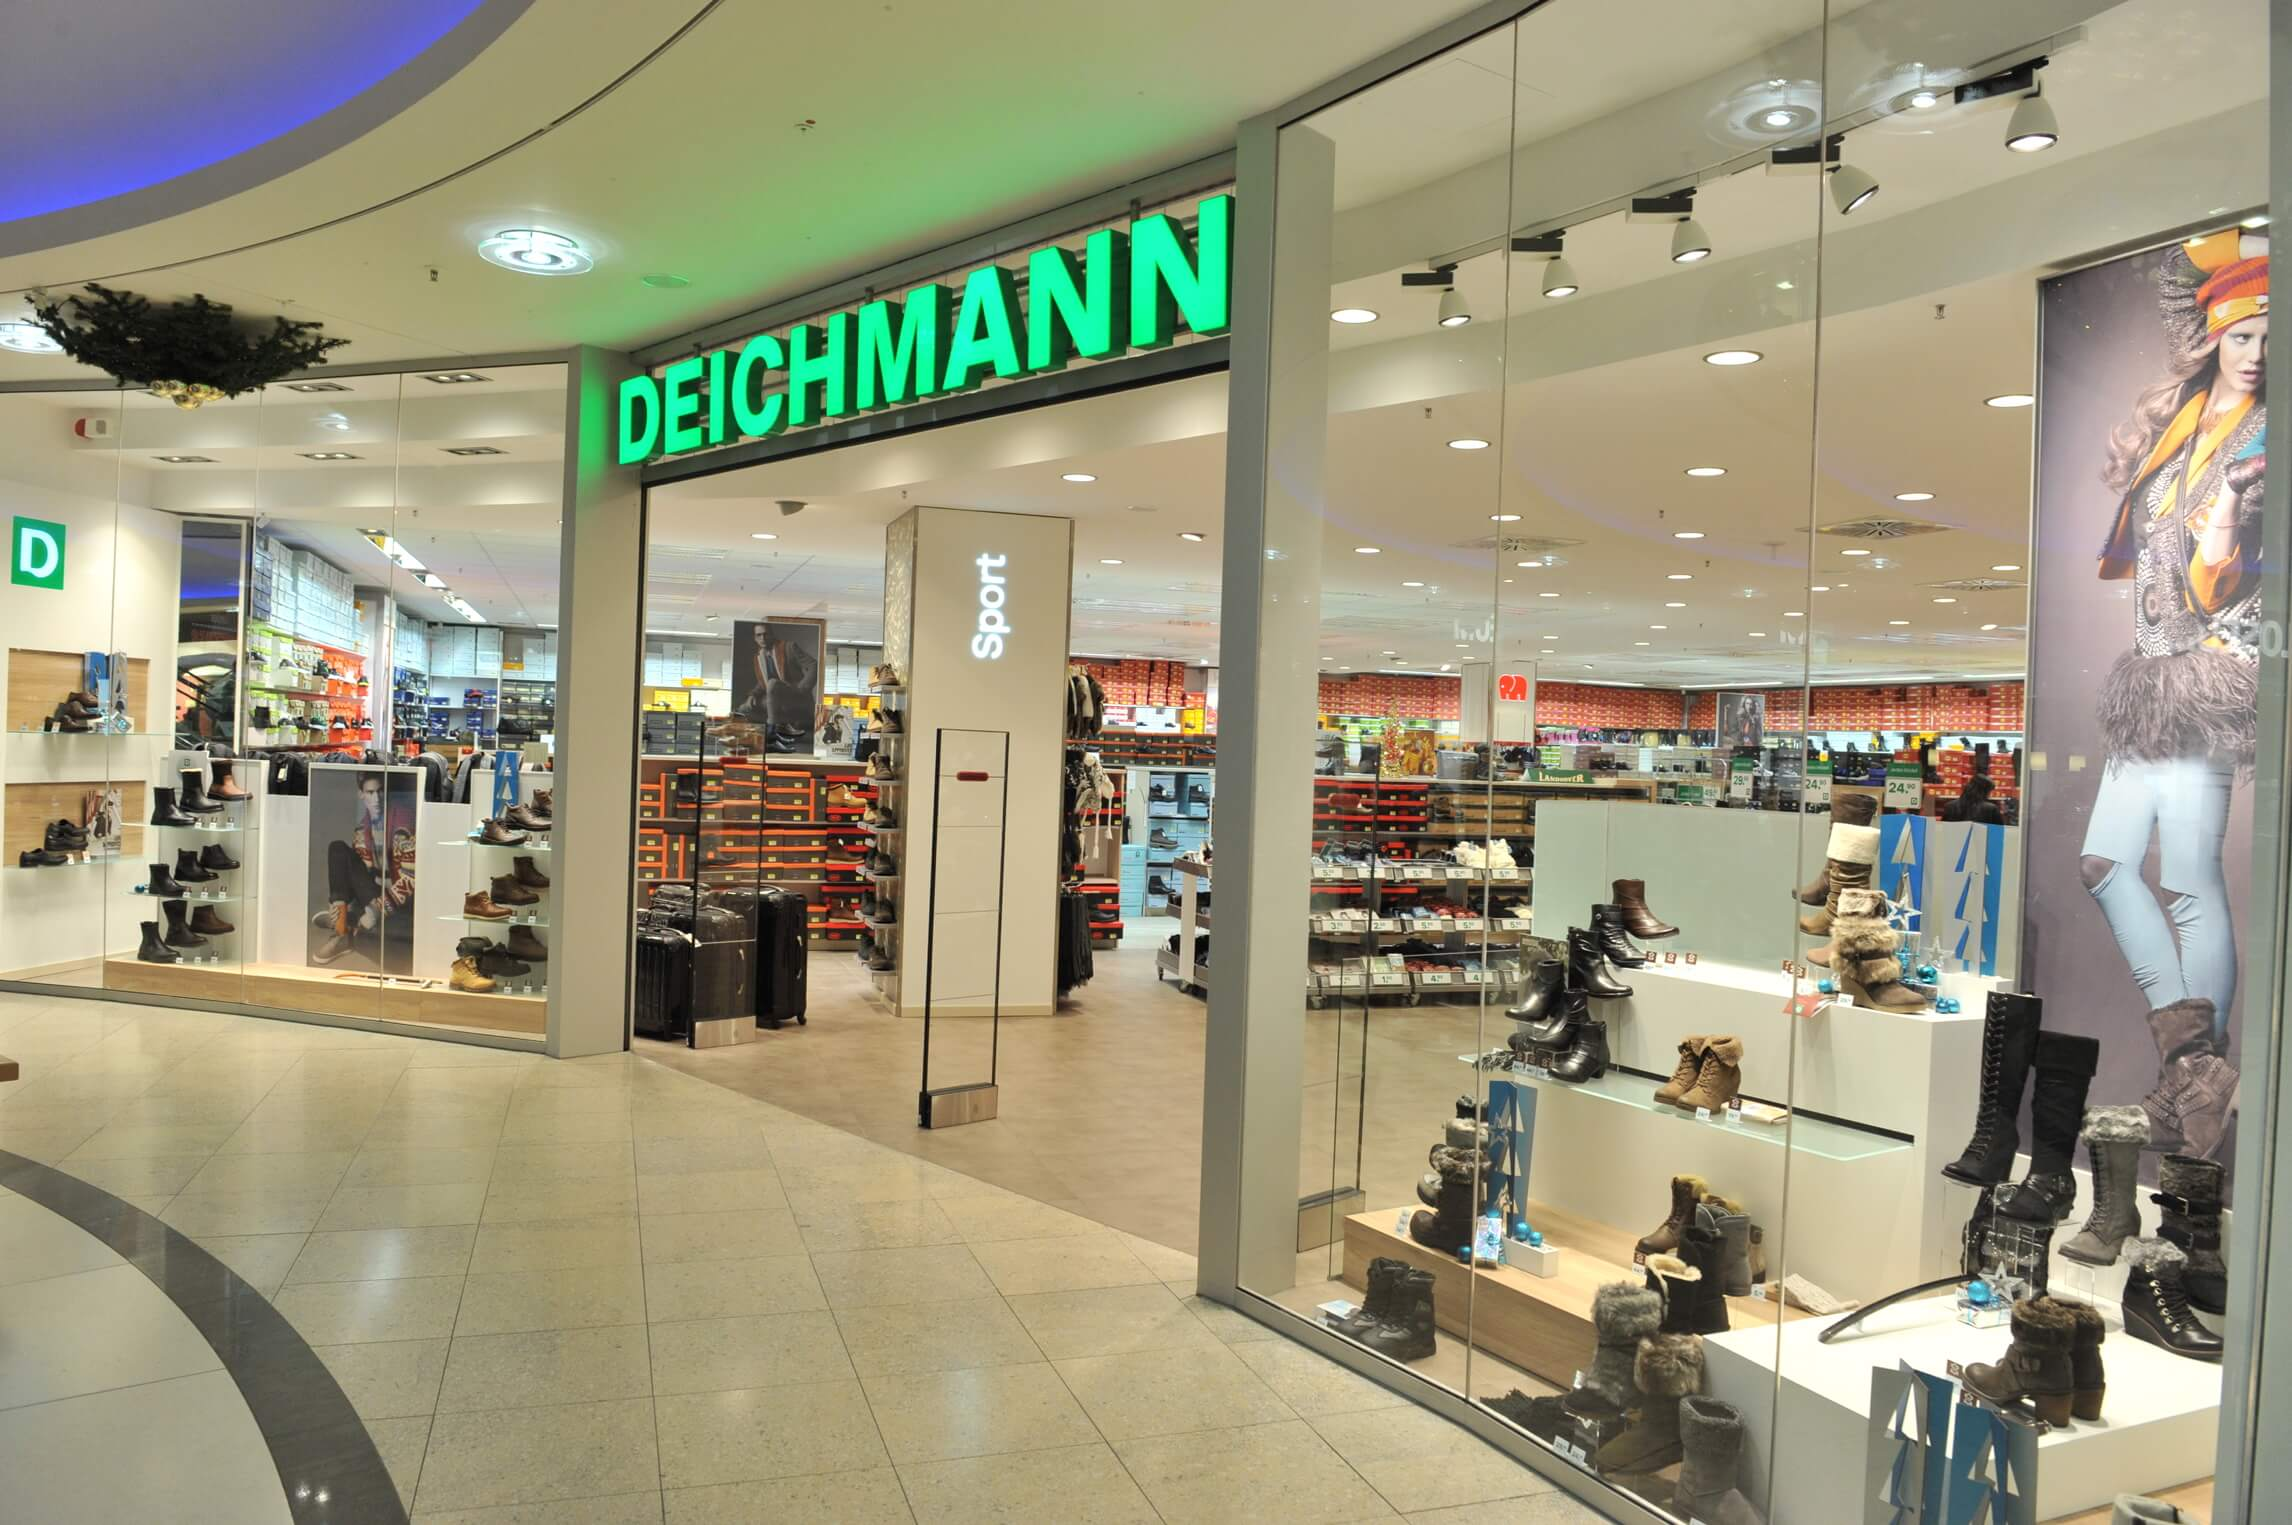 deichmann shopping schuhe lederwaren emgalerie rheine. Black Bedroom Furniture Sets. Home Design Ideas